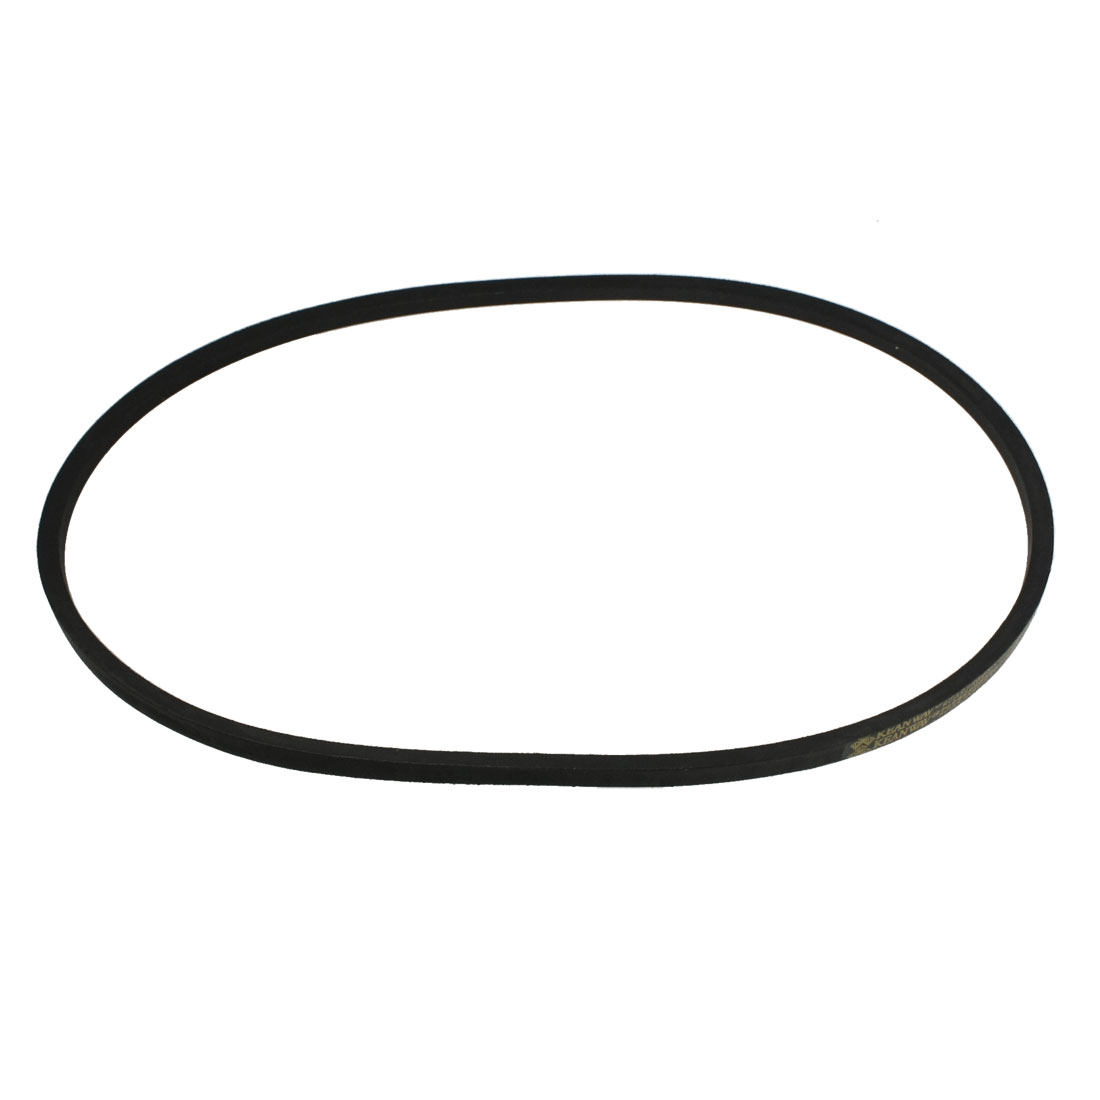 uxcell 110XL Engine Timing Belt 55 Teeth 5.08mm Pitch 10mm Width 279.4mm